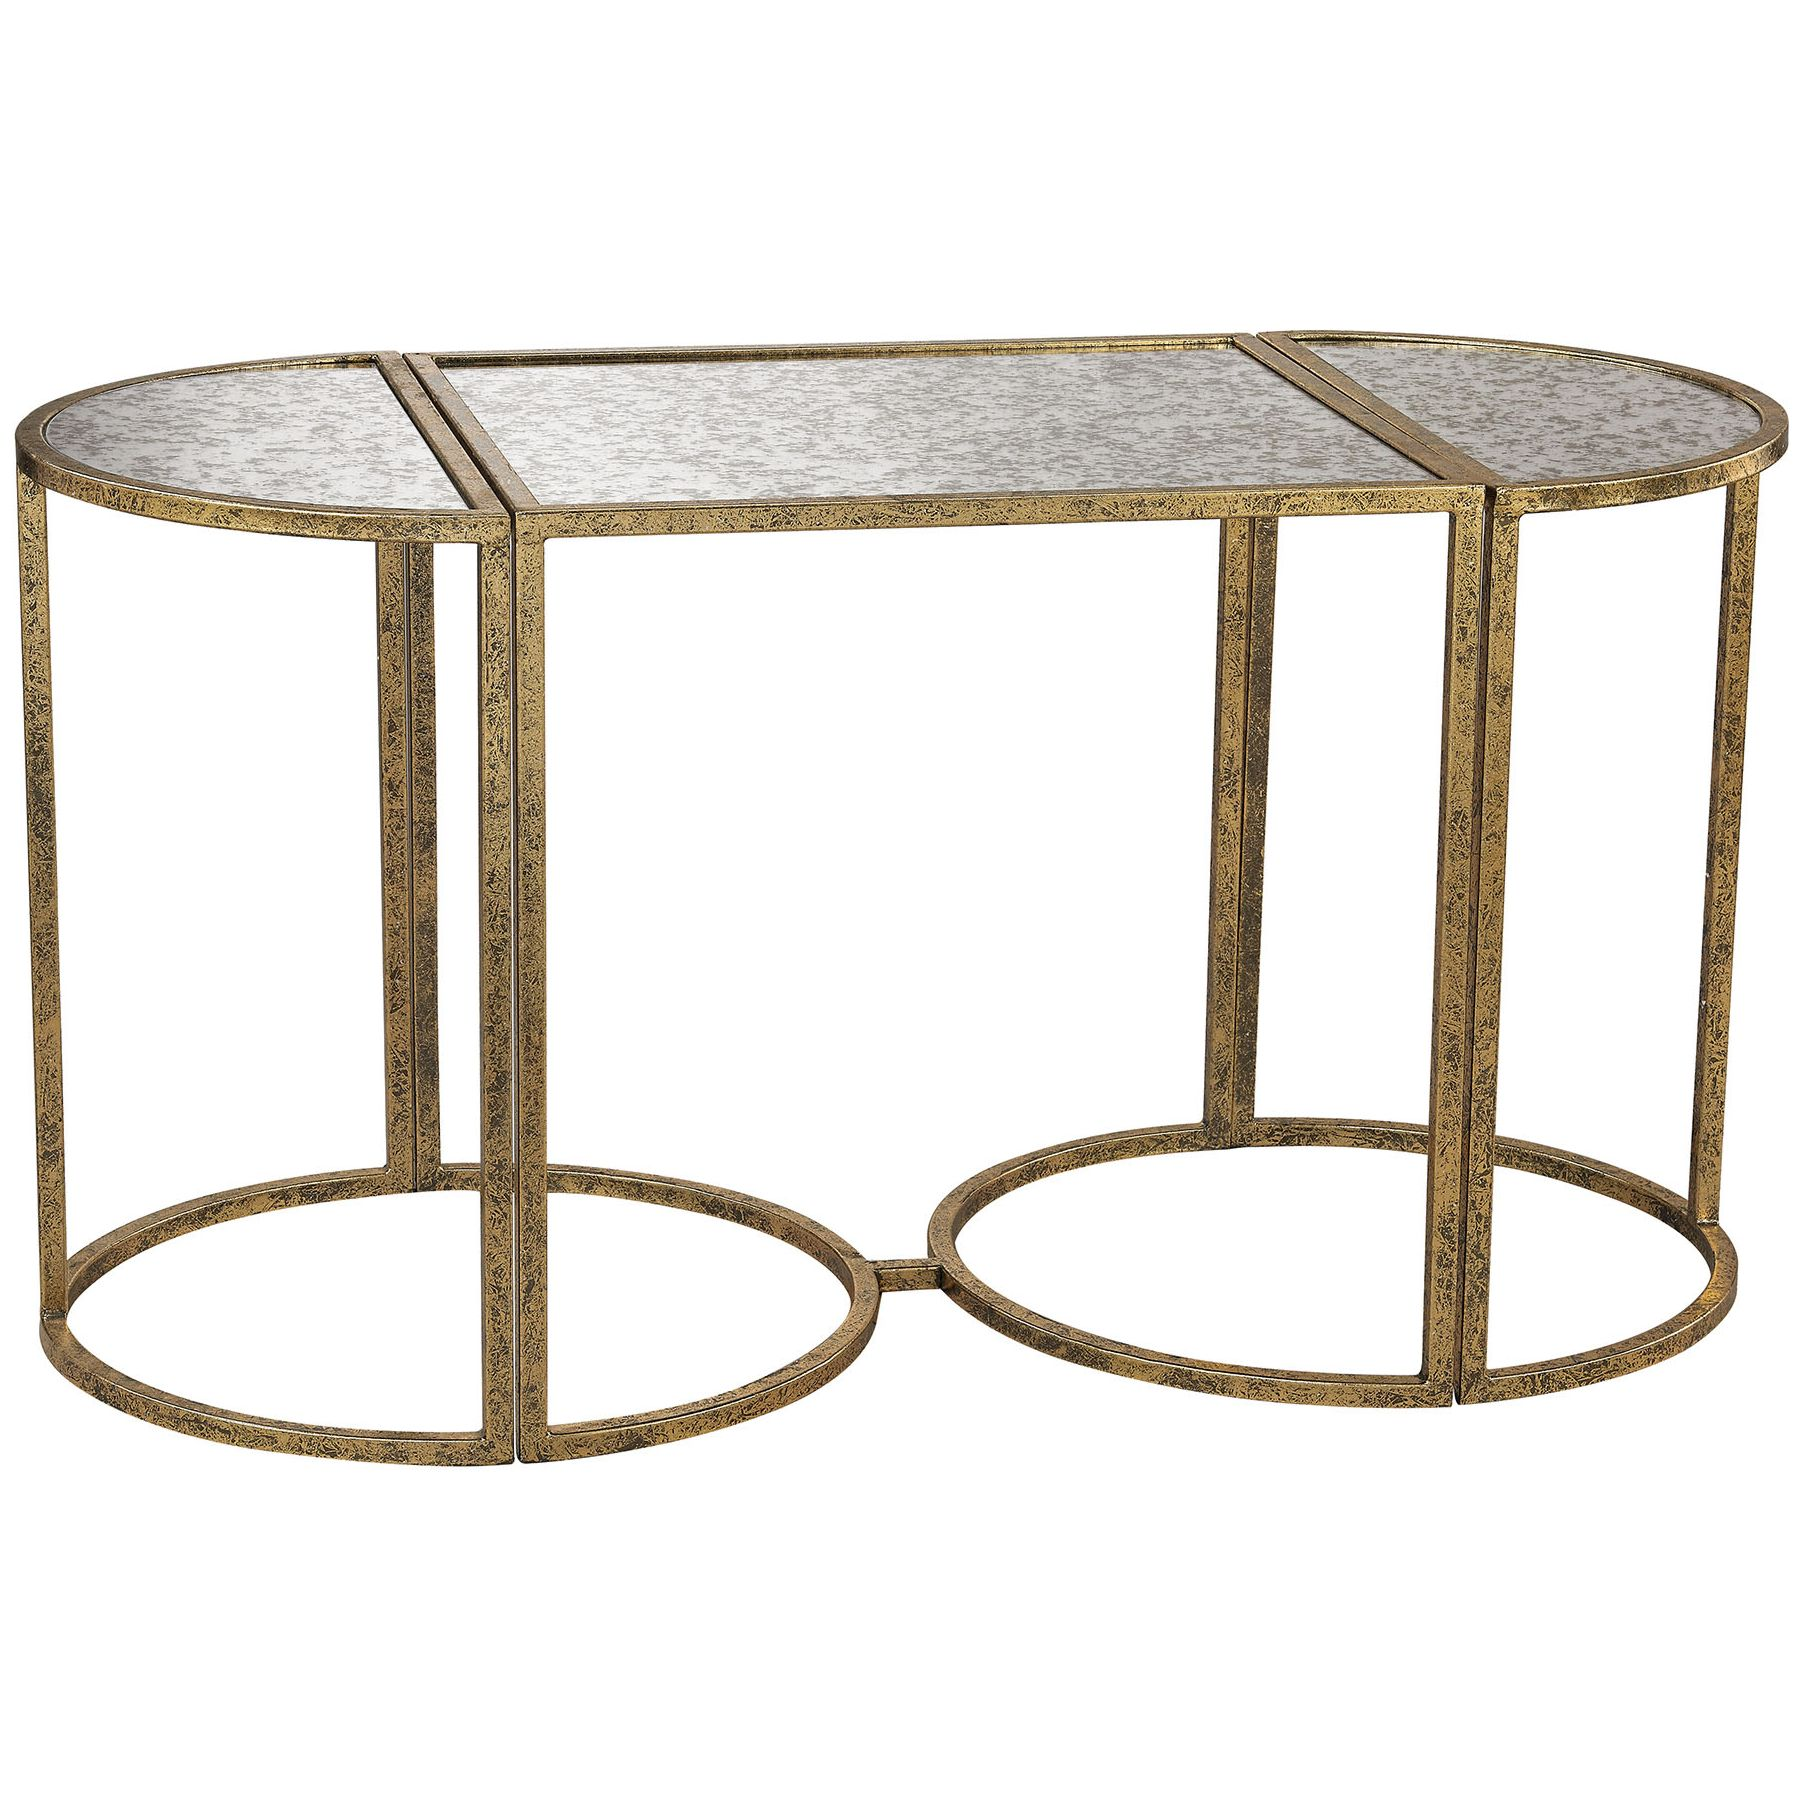 sterling industries versailles gold accent console table glass drummer stool with backrest curved patio umbrella round cover mango wood end covers square legs funky tables unique